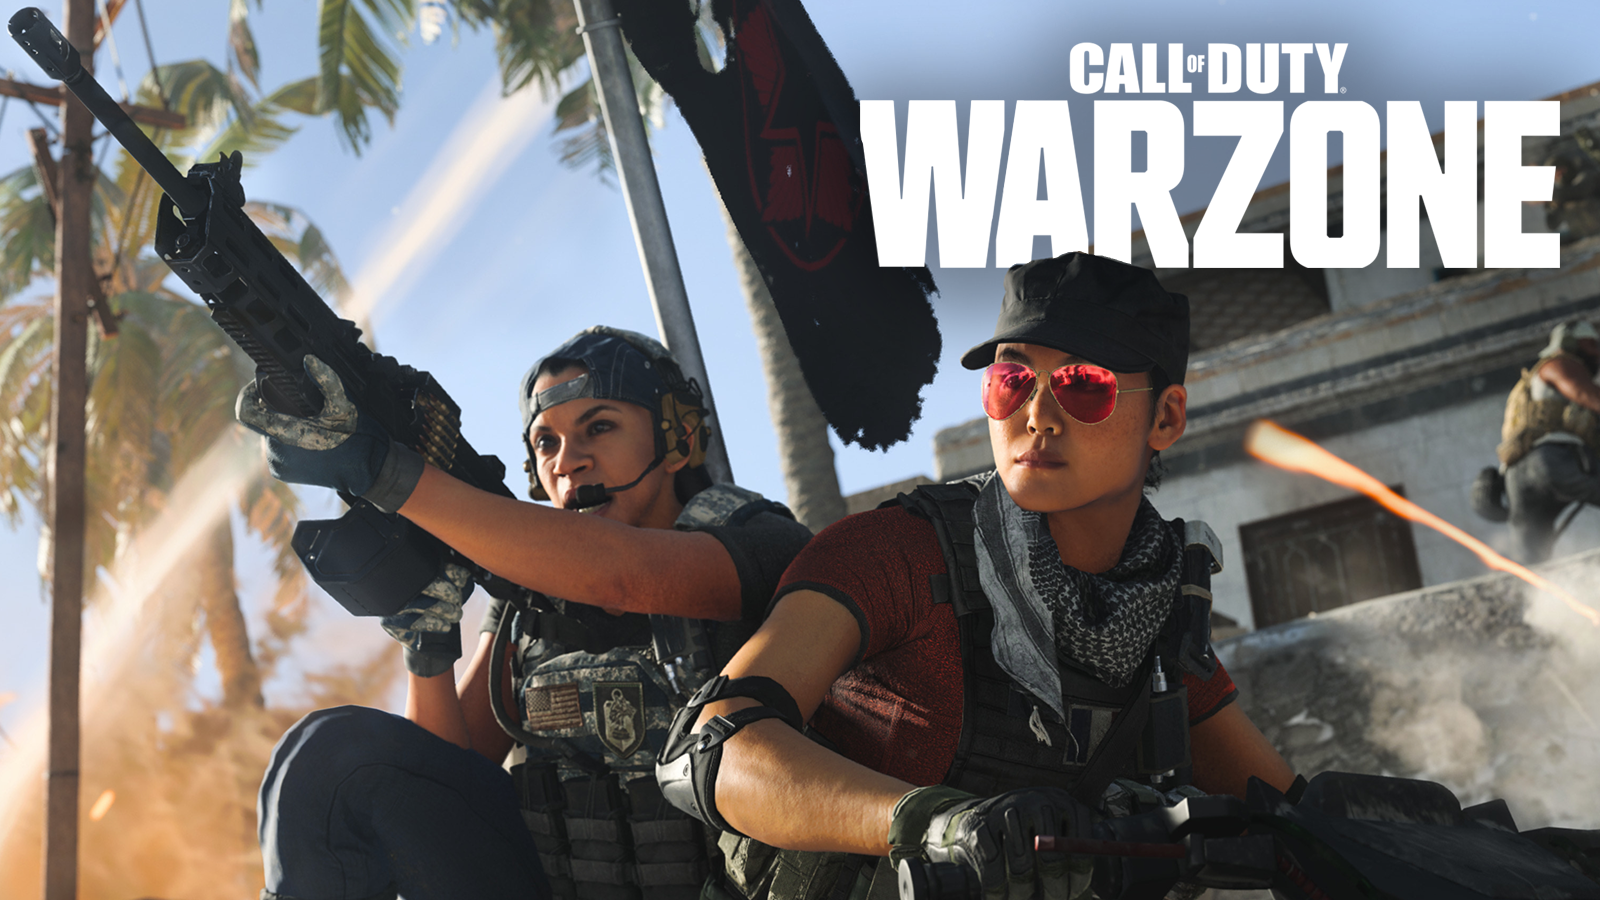 Warzone is still very much front-and-center for Call of Duty's plans, despite the 2020 release coming on-schedule.